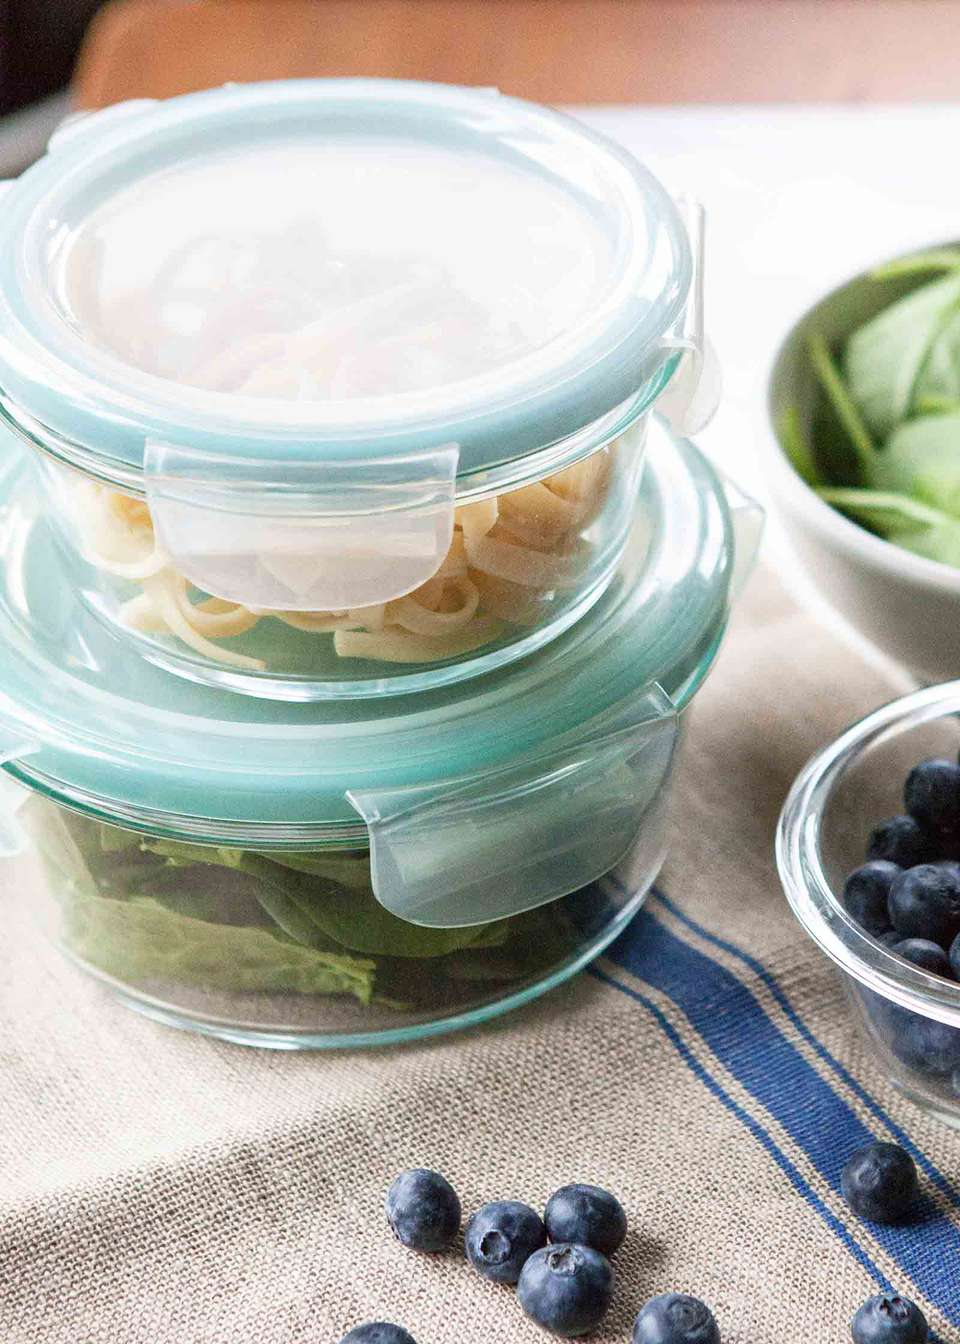 Food Storage Containers - glass containers are easy to reheat